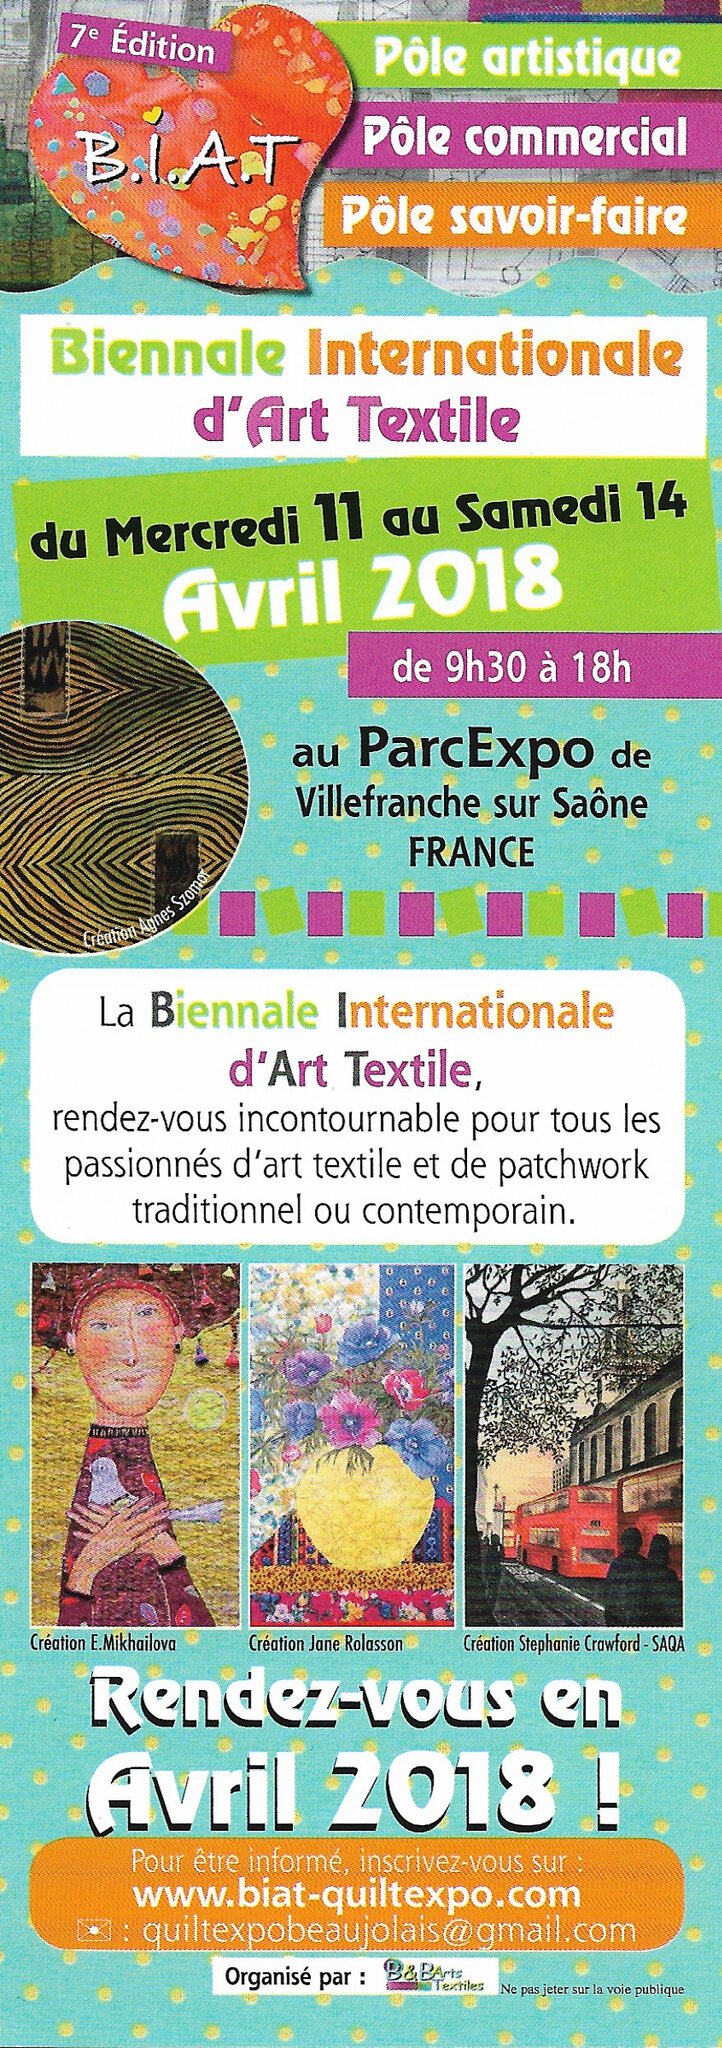 BIAT QUILT EXPO EN BEAUJOLAIS 11-14 AVRIL 2018